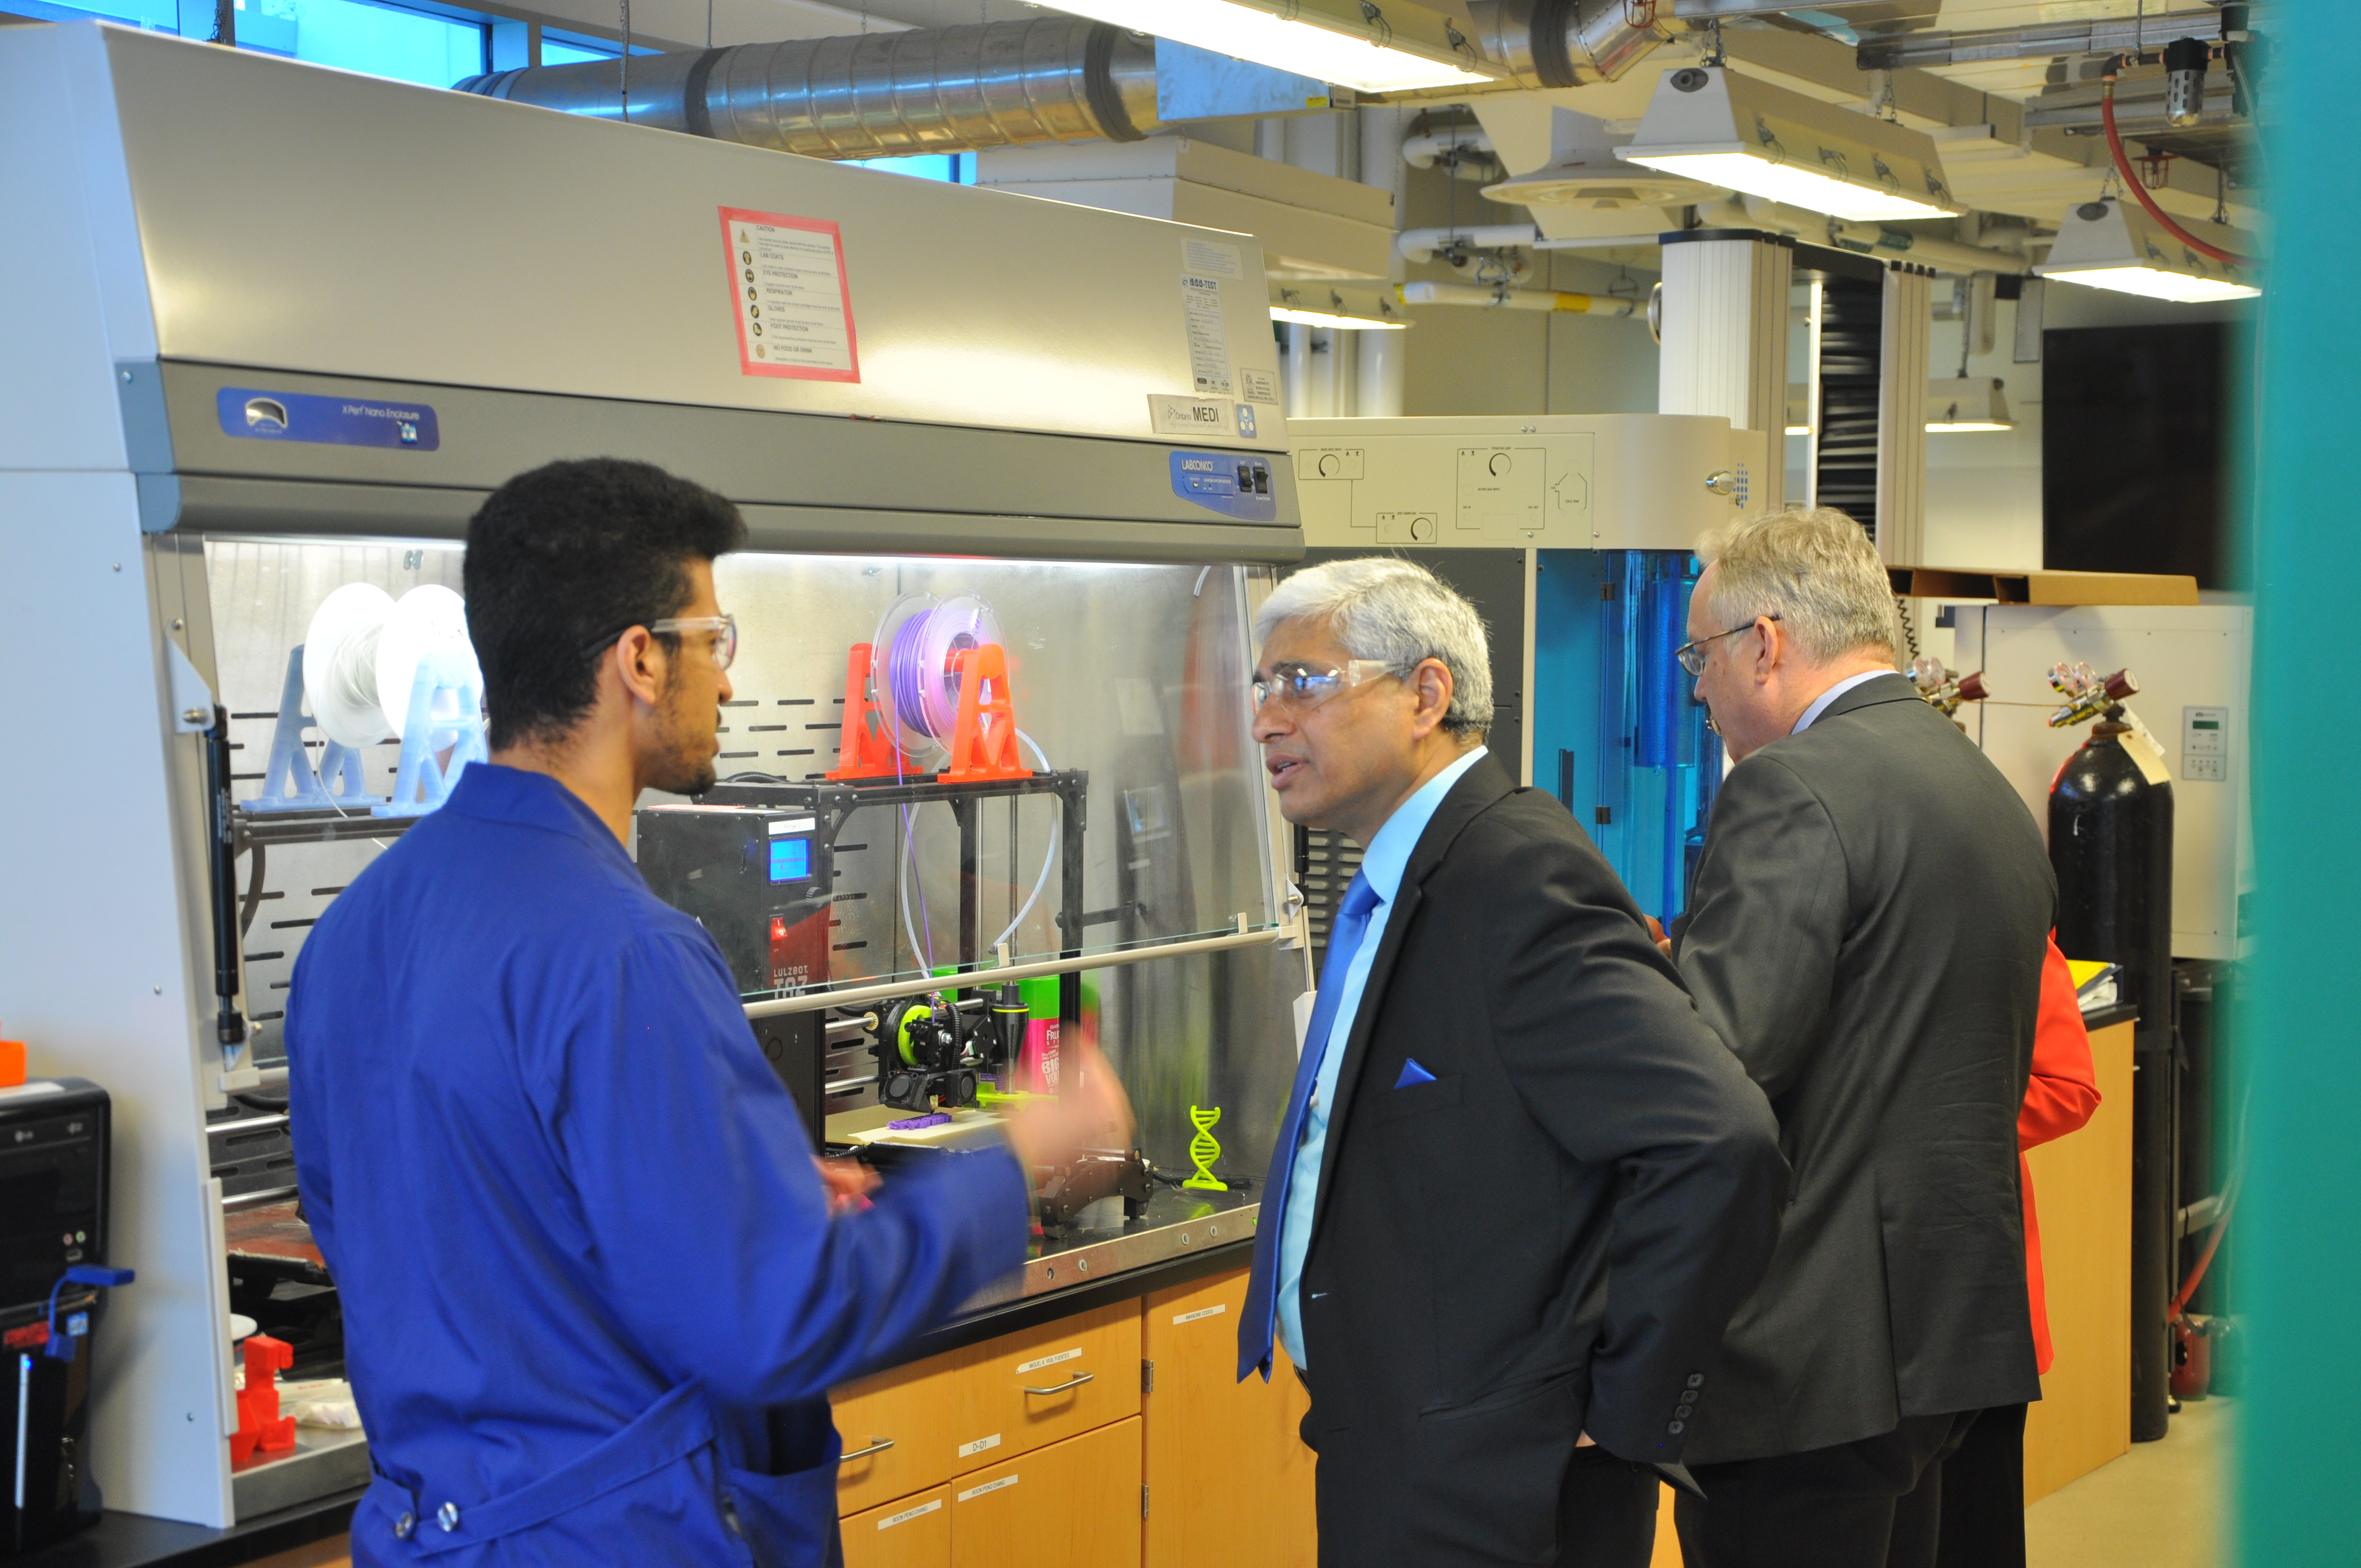 High Commissioner of India given a tour of the bioproducts lab and interacting with the HQP.